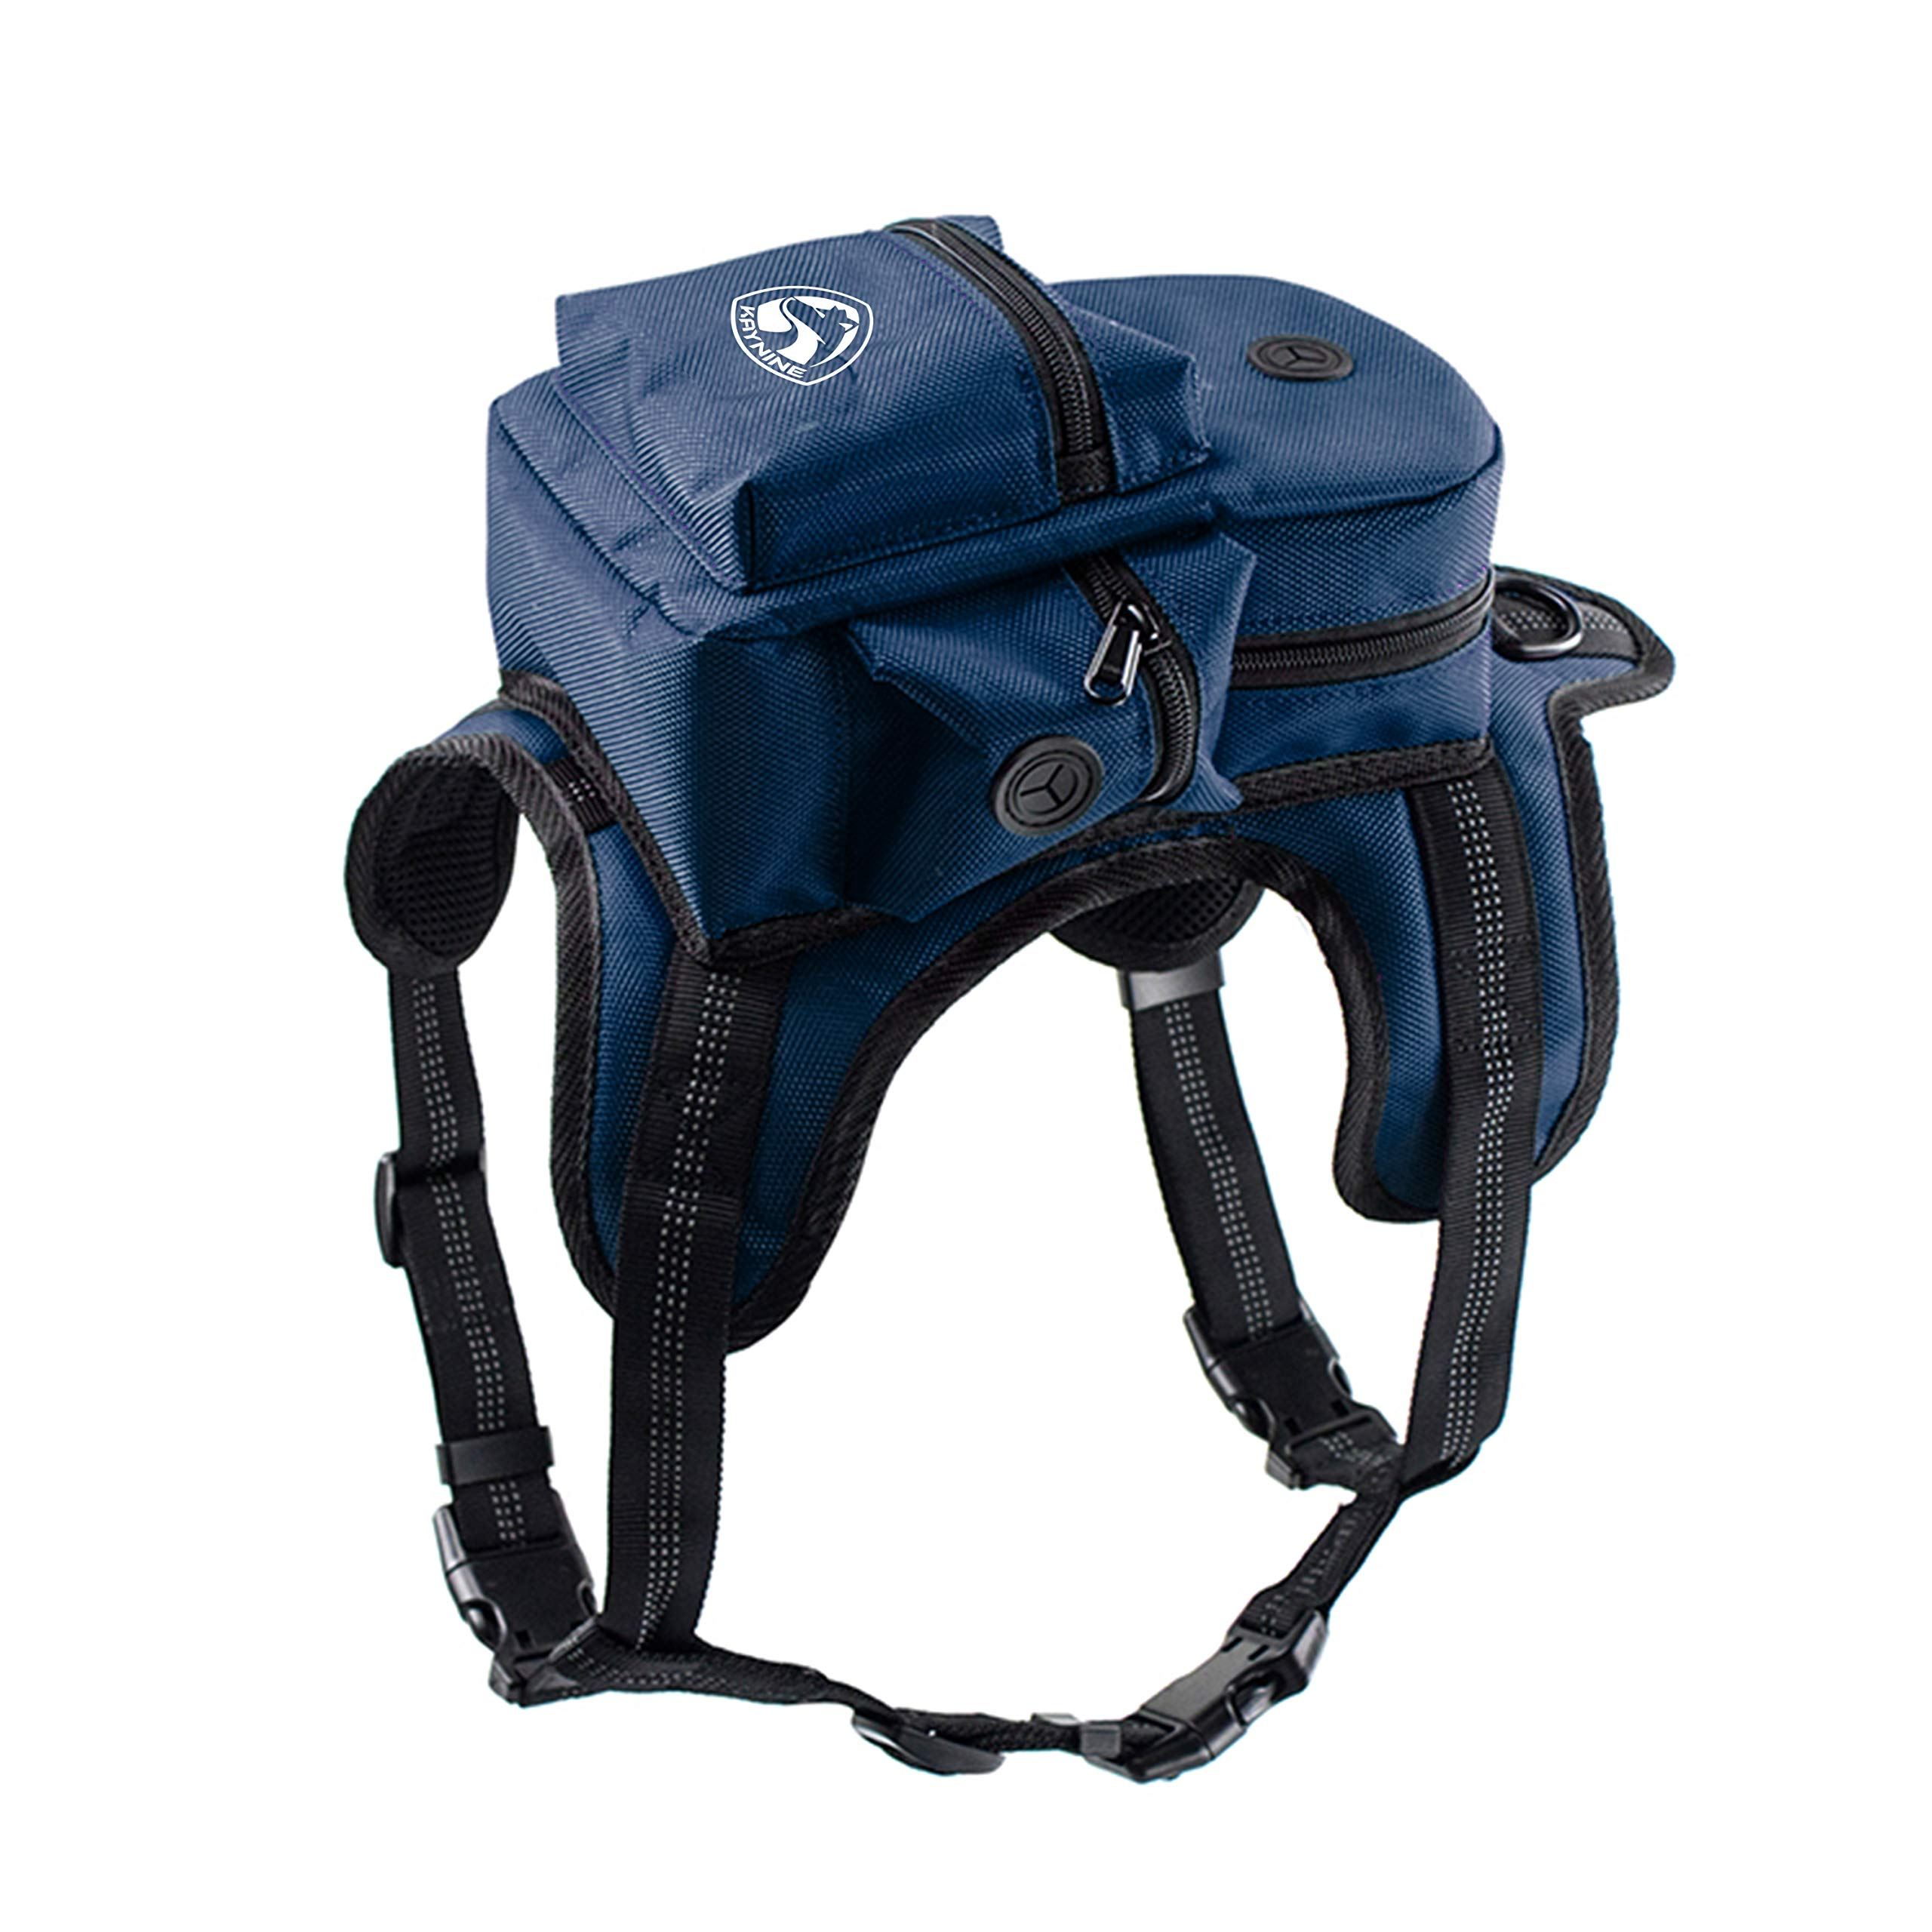 Kaynine Dog Backpack for Travel Camping Hiking. (Small, Blue)